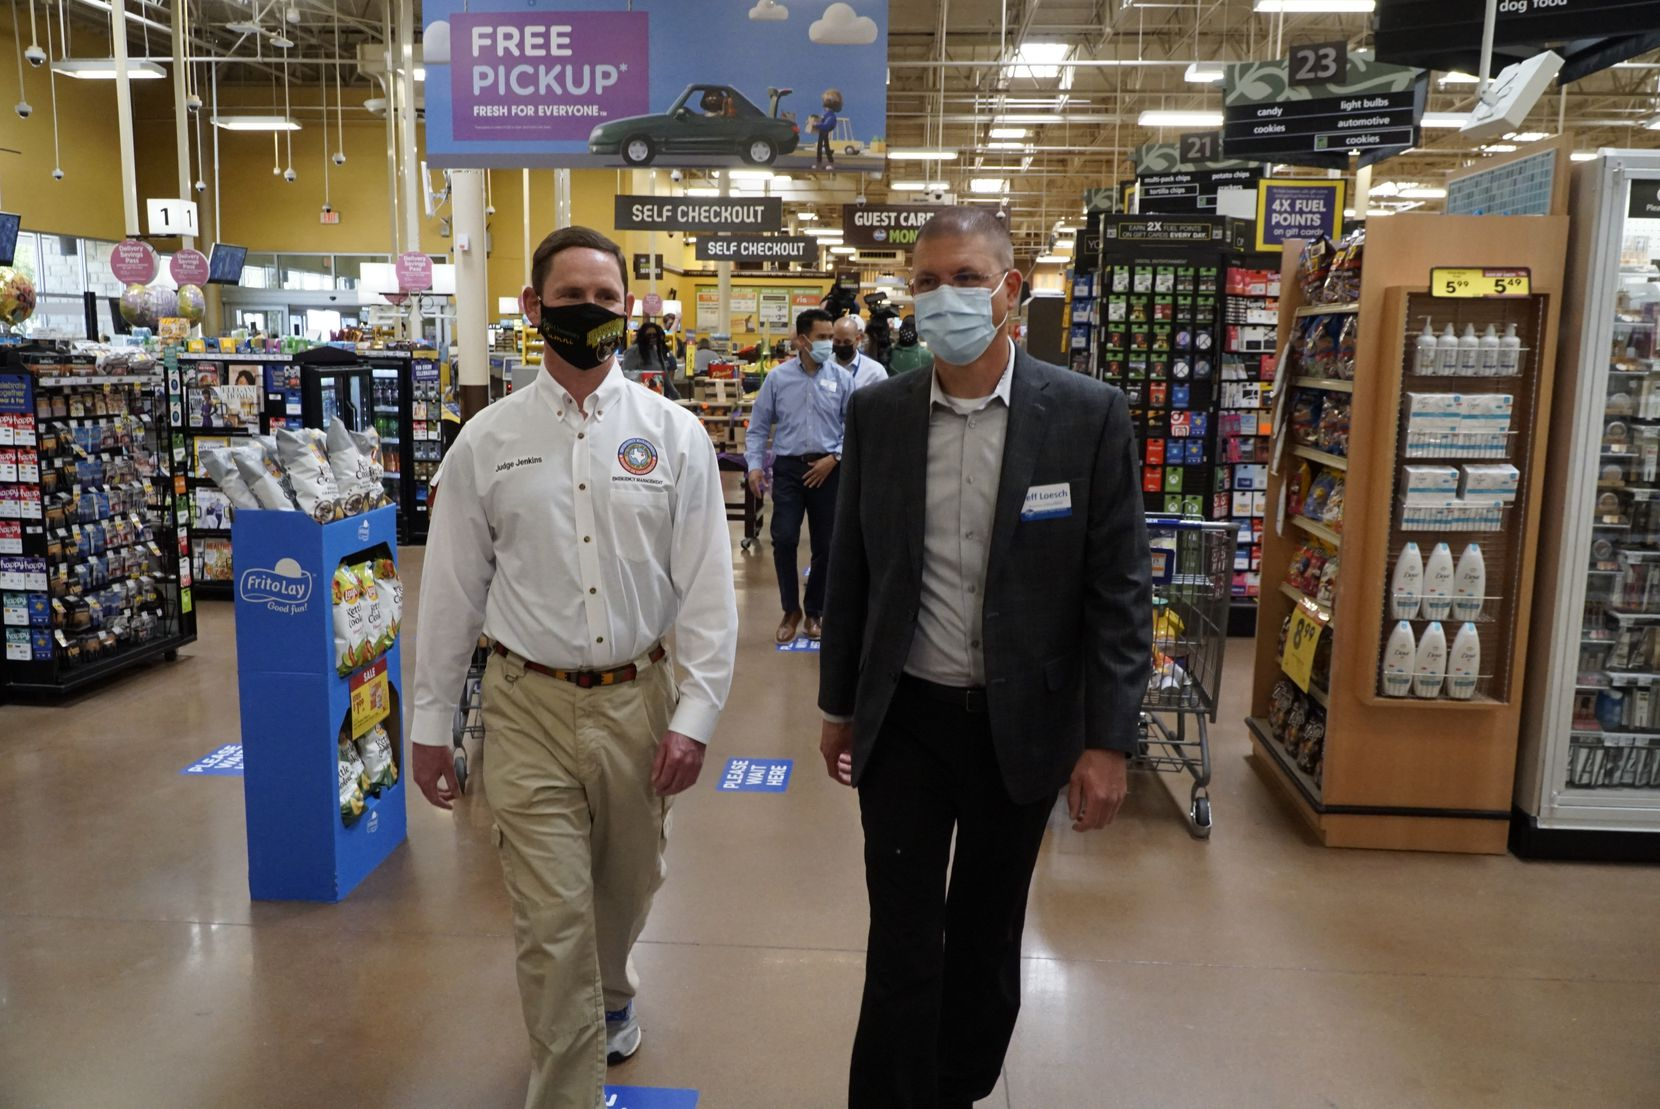 Clay Jenkins and Kroger Health Director (Dallas Division) Jeff Loesch at the Kroger store Maple Avenue in Dallas, Texas on Monday March 29, 2021. Kroger started a program that will allow their pharmacist to vaccinate store employees.